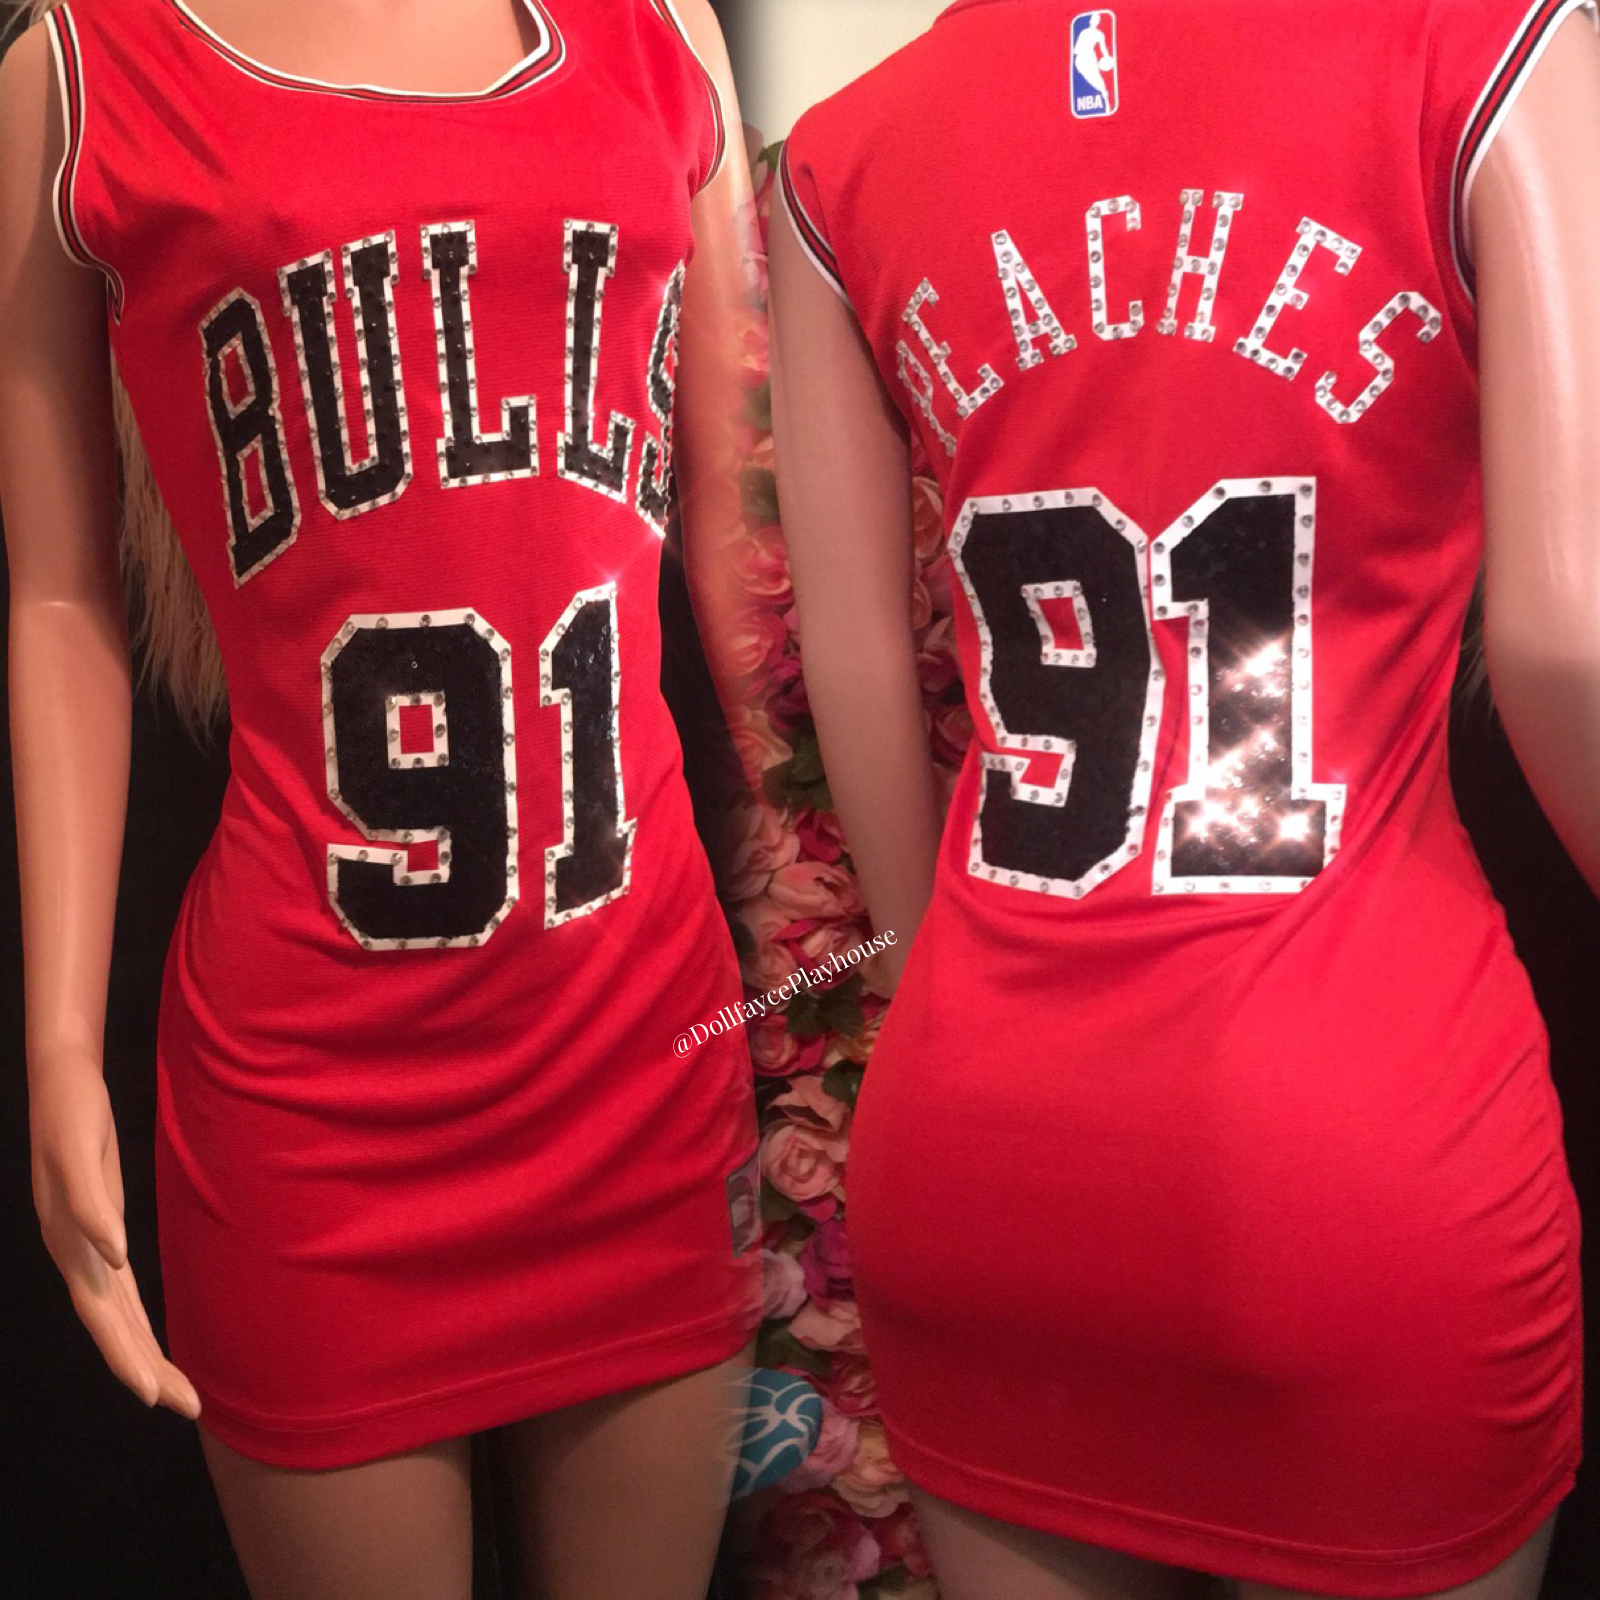 The Throwback Nba Jersey Dresses Bringing Back The Late 90s Early 2000s Fashion With A Nostalgic Feel And Vibe Jersey Dress Nba Jersey Dress Jersey Dresses Diy